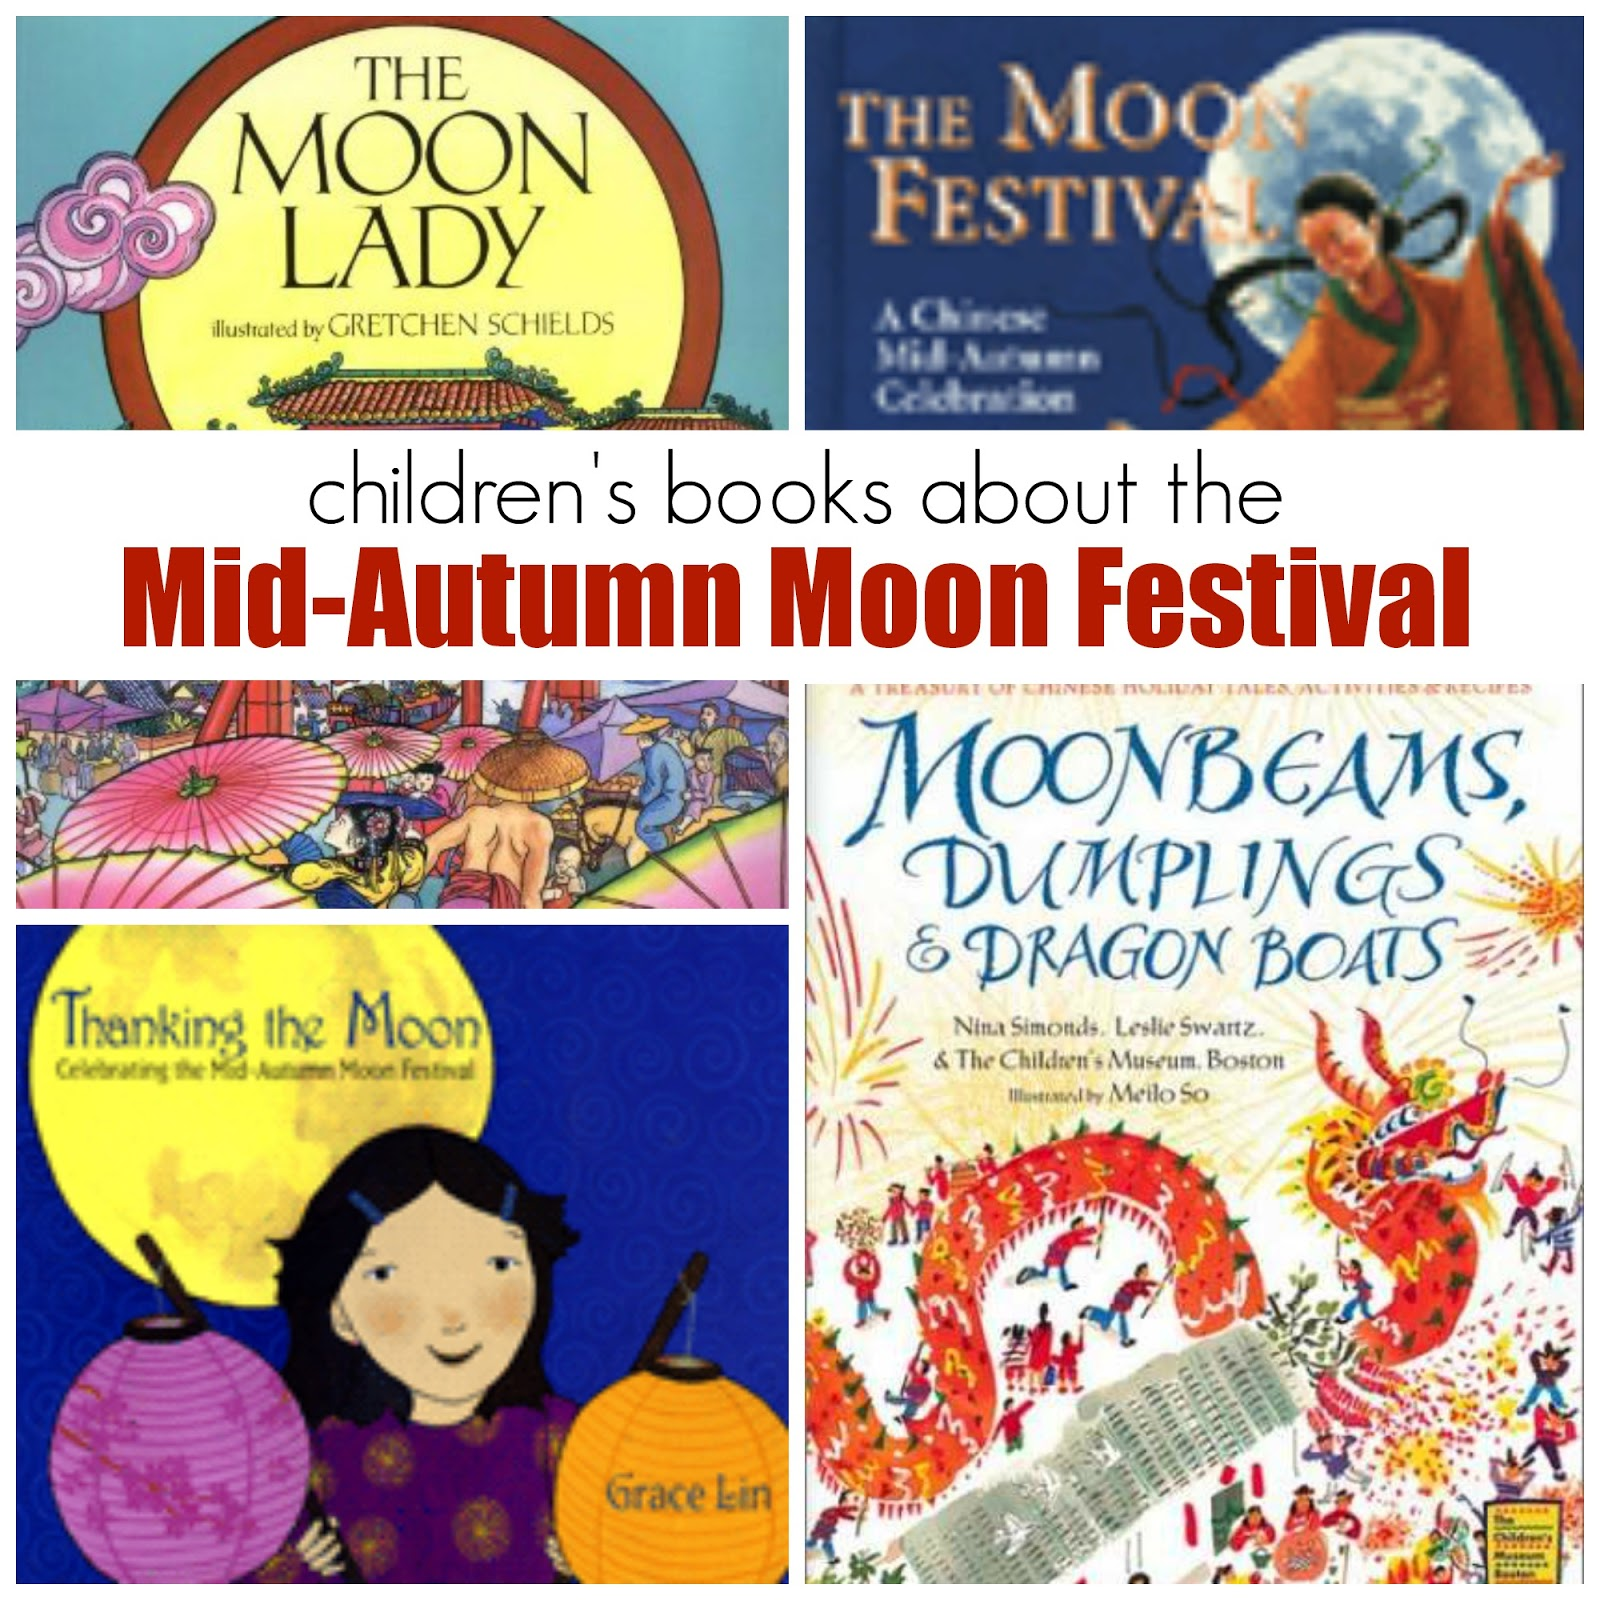 stories of the mid autumn festival Besides chang'e, there is also a rabbit on the moon, the jade rabbit his story is also a main folk tale told during mid autumn festival & it begins.